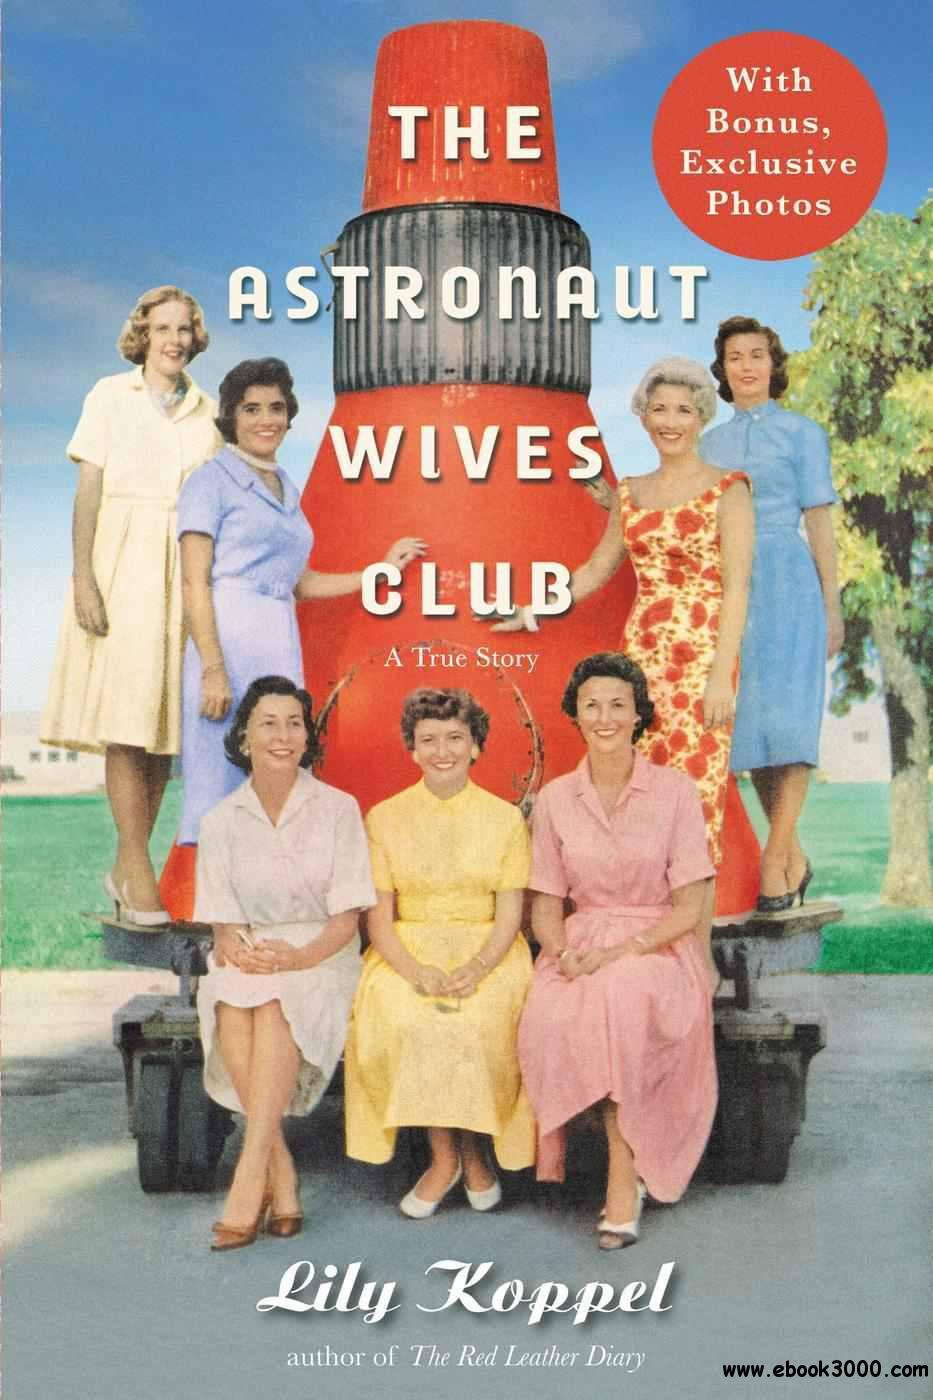 The Astronaut Wives Club: A True Story download dree